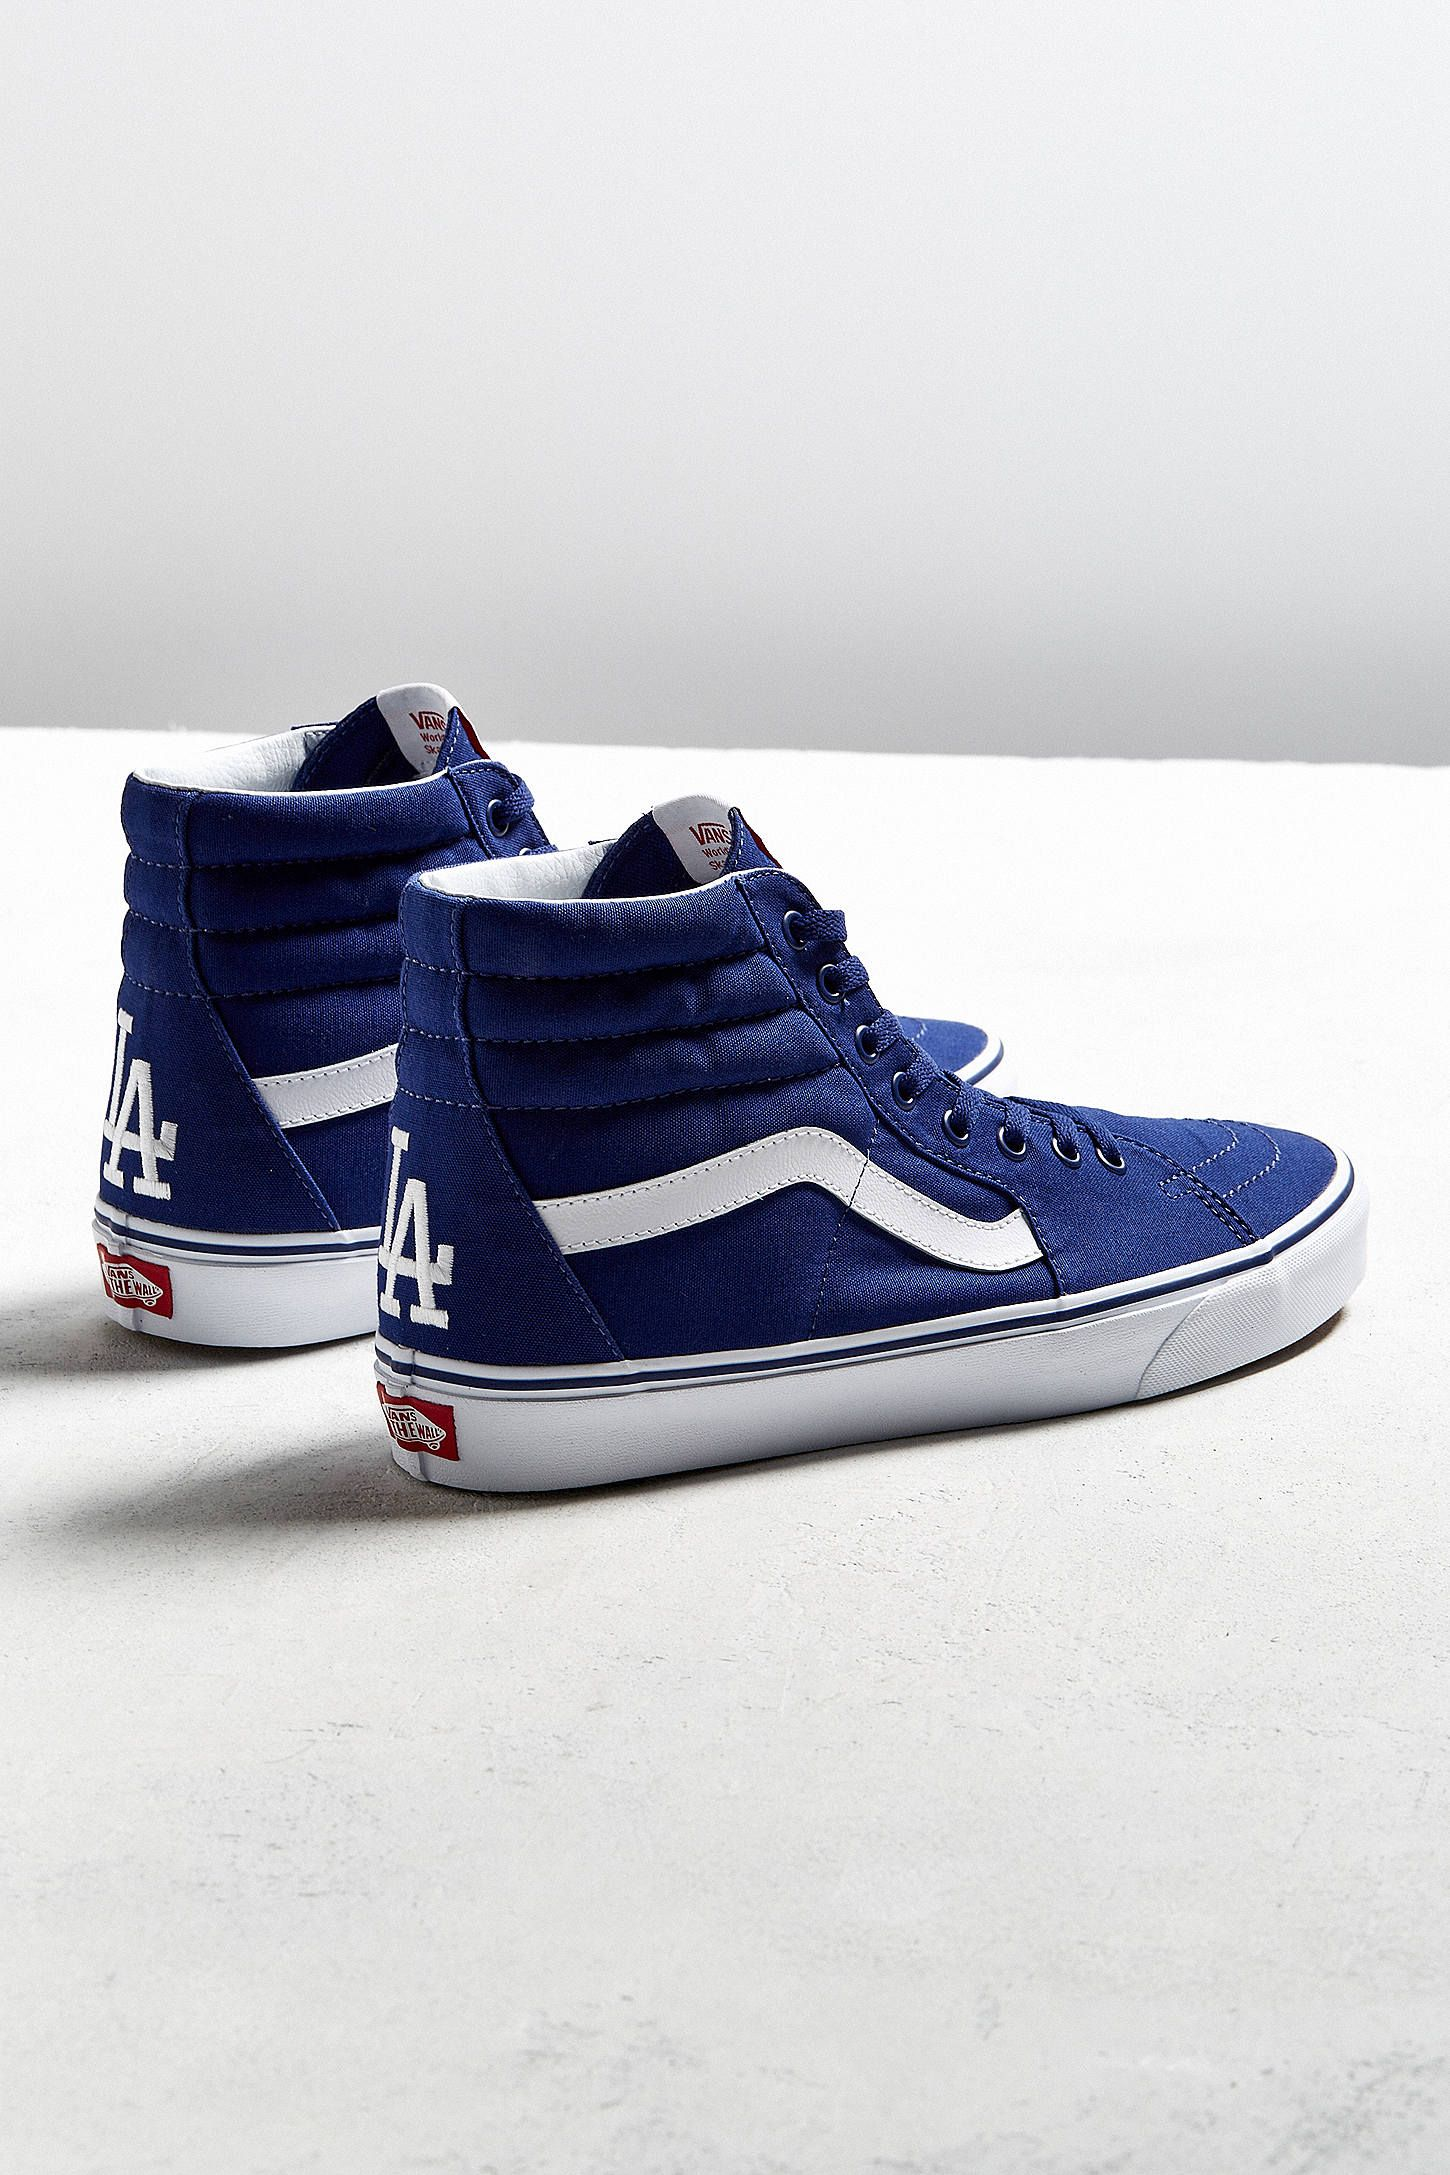 3b1f005ecb Slide View  1  Vans MLB Los Angeles Dodgers Sk8-Hi Sneaker